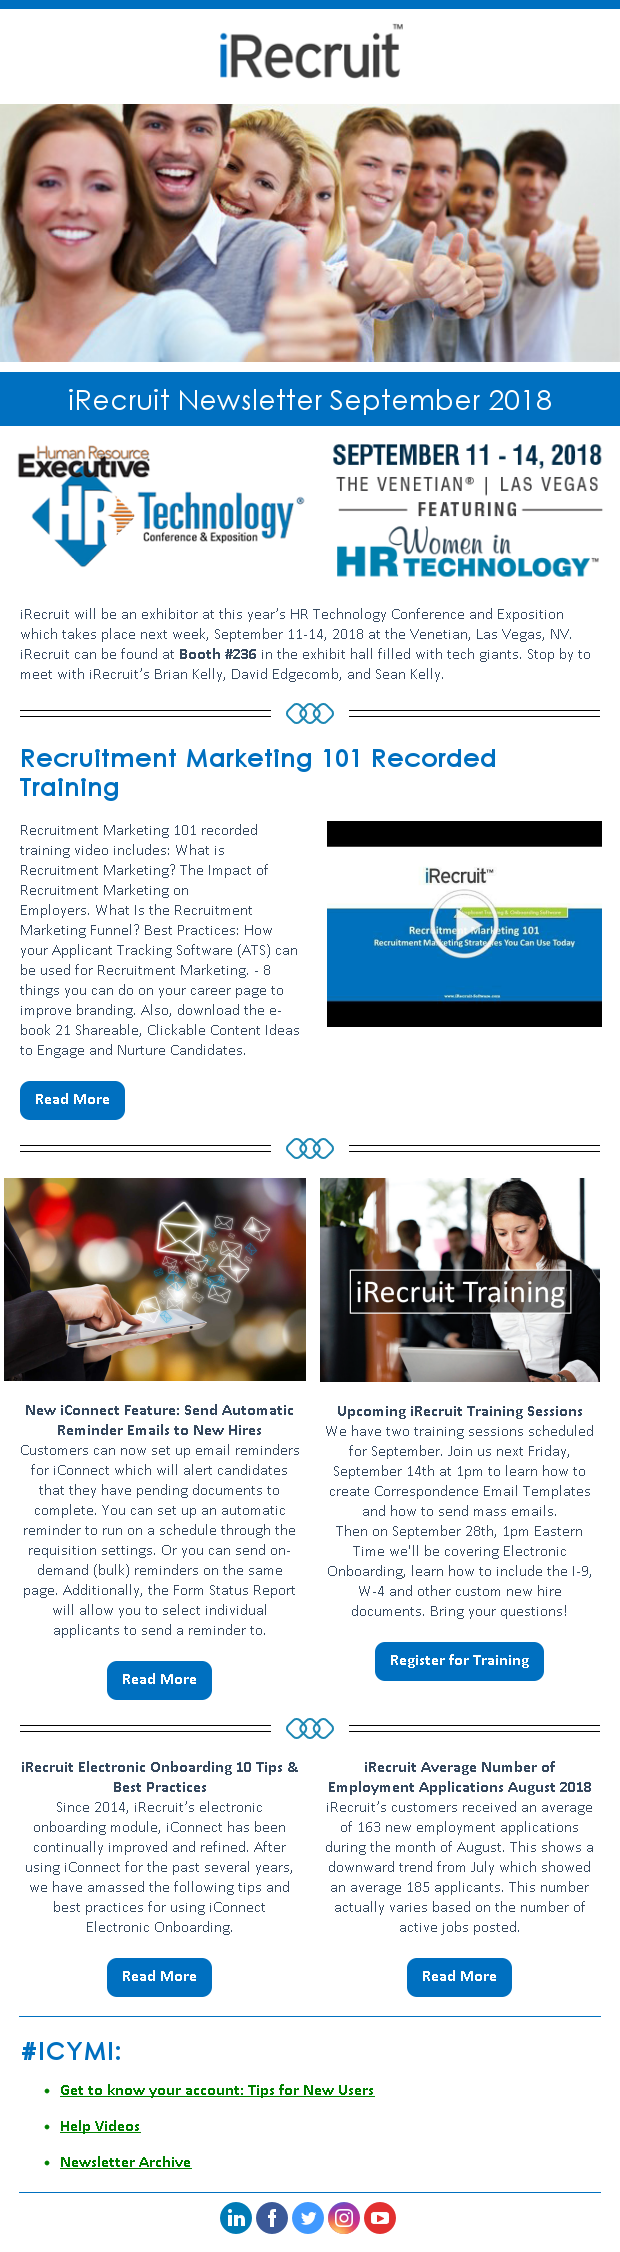 iRecruit Customer Newsletter September 2018